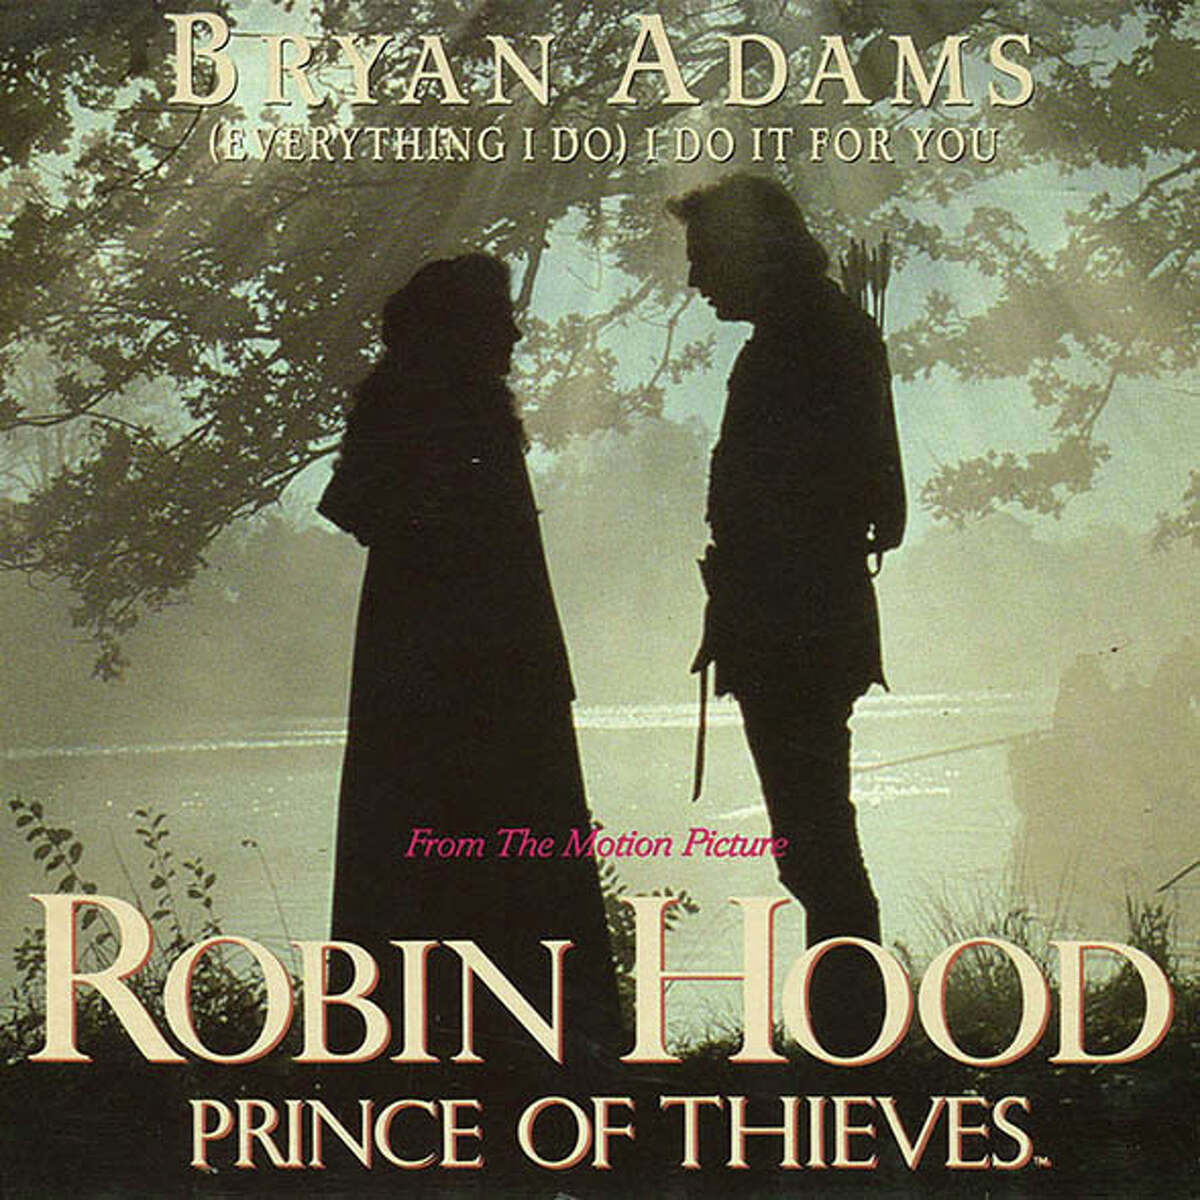 (EVERYTHING I DO) I DO IT FOR YOU Bryan Adams - 1991Featured in the movie